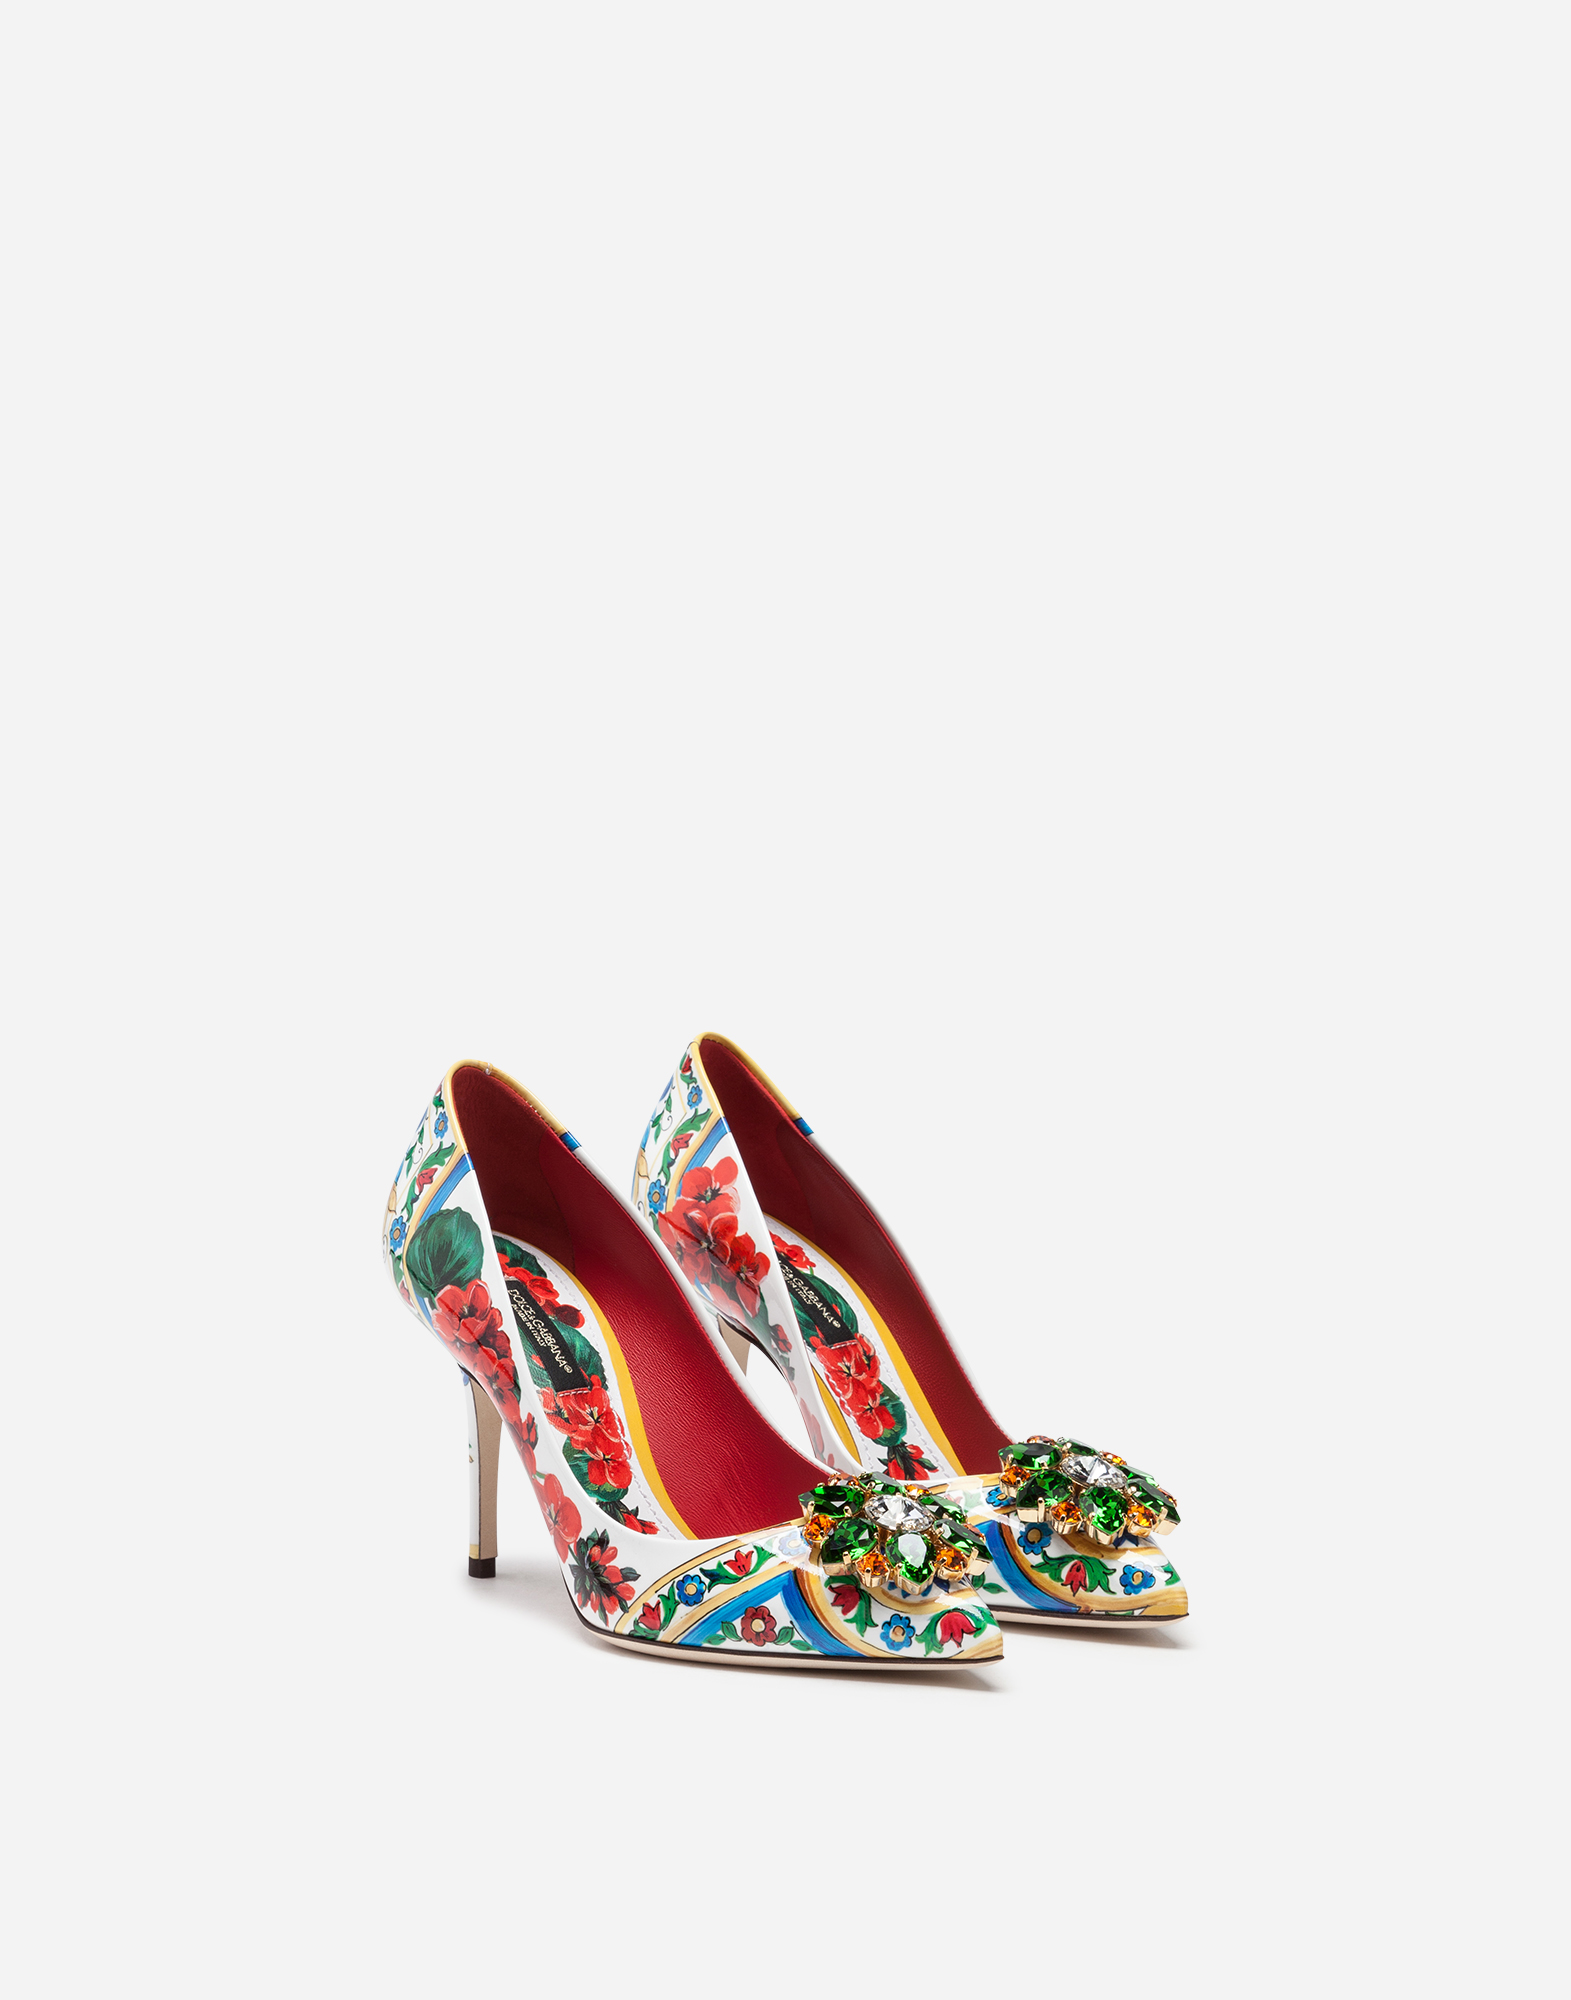 Dolce & Gabbana PRINTED PATENT LEATHER PUMPS WITH BROOCHES